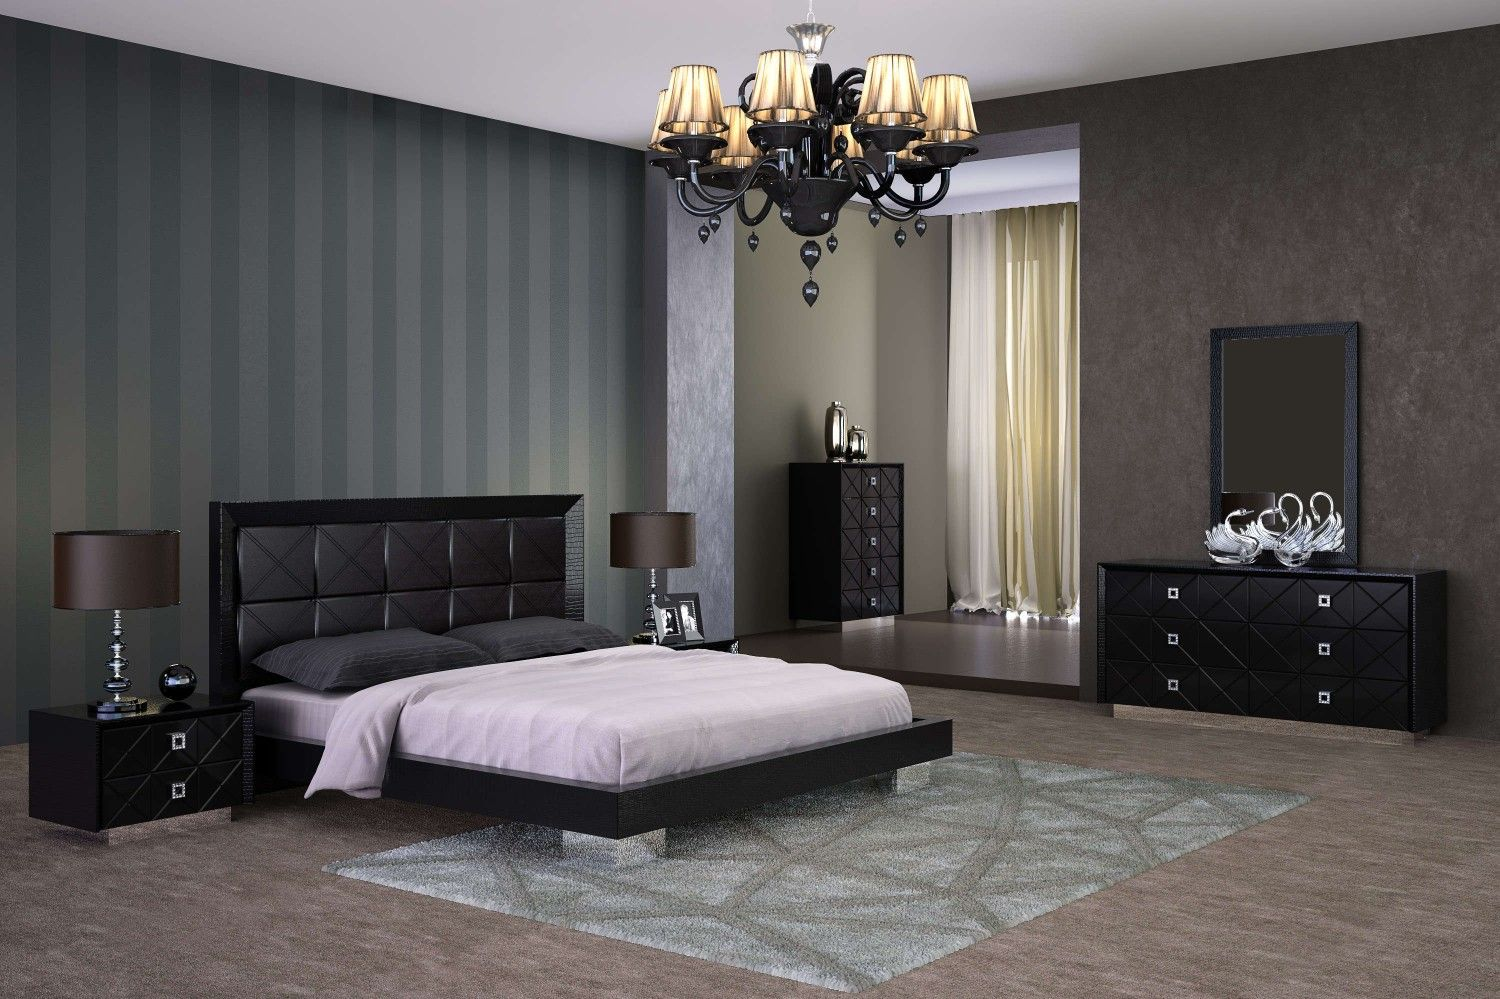 Zara Bedroom Set  Creative Furniture in Specials  Bedroom sets